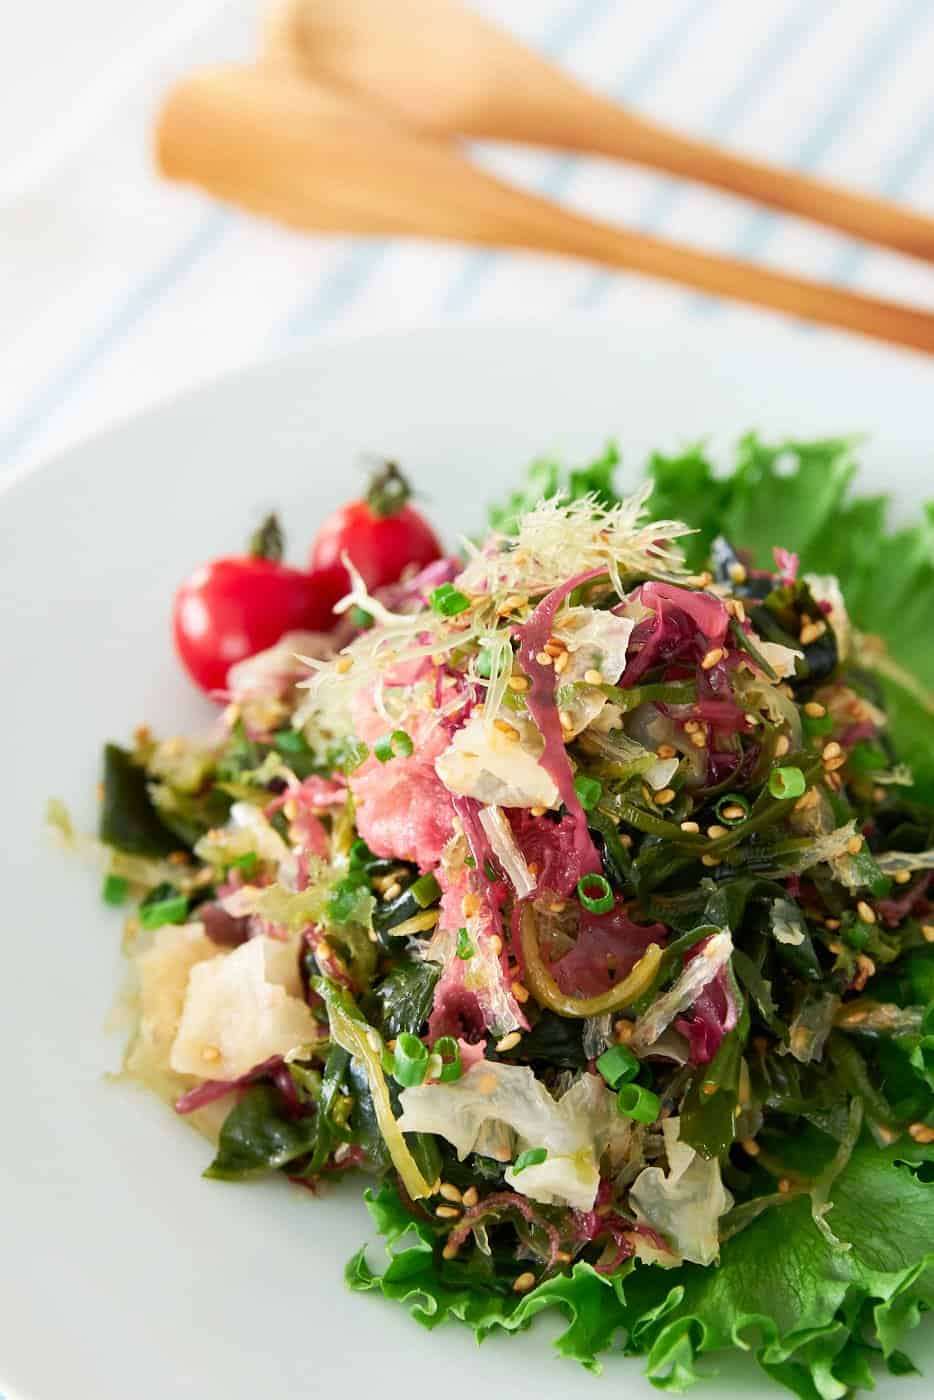 Savory, sweet, and redolent of toasted sesame, Seaweed Salad is cheap and easy to make at home!